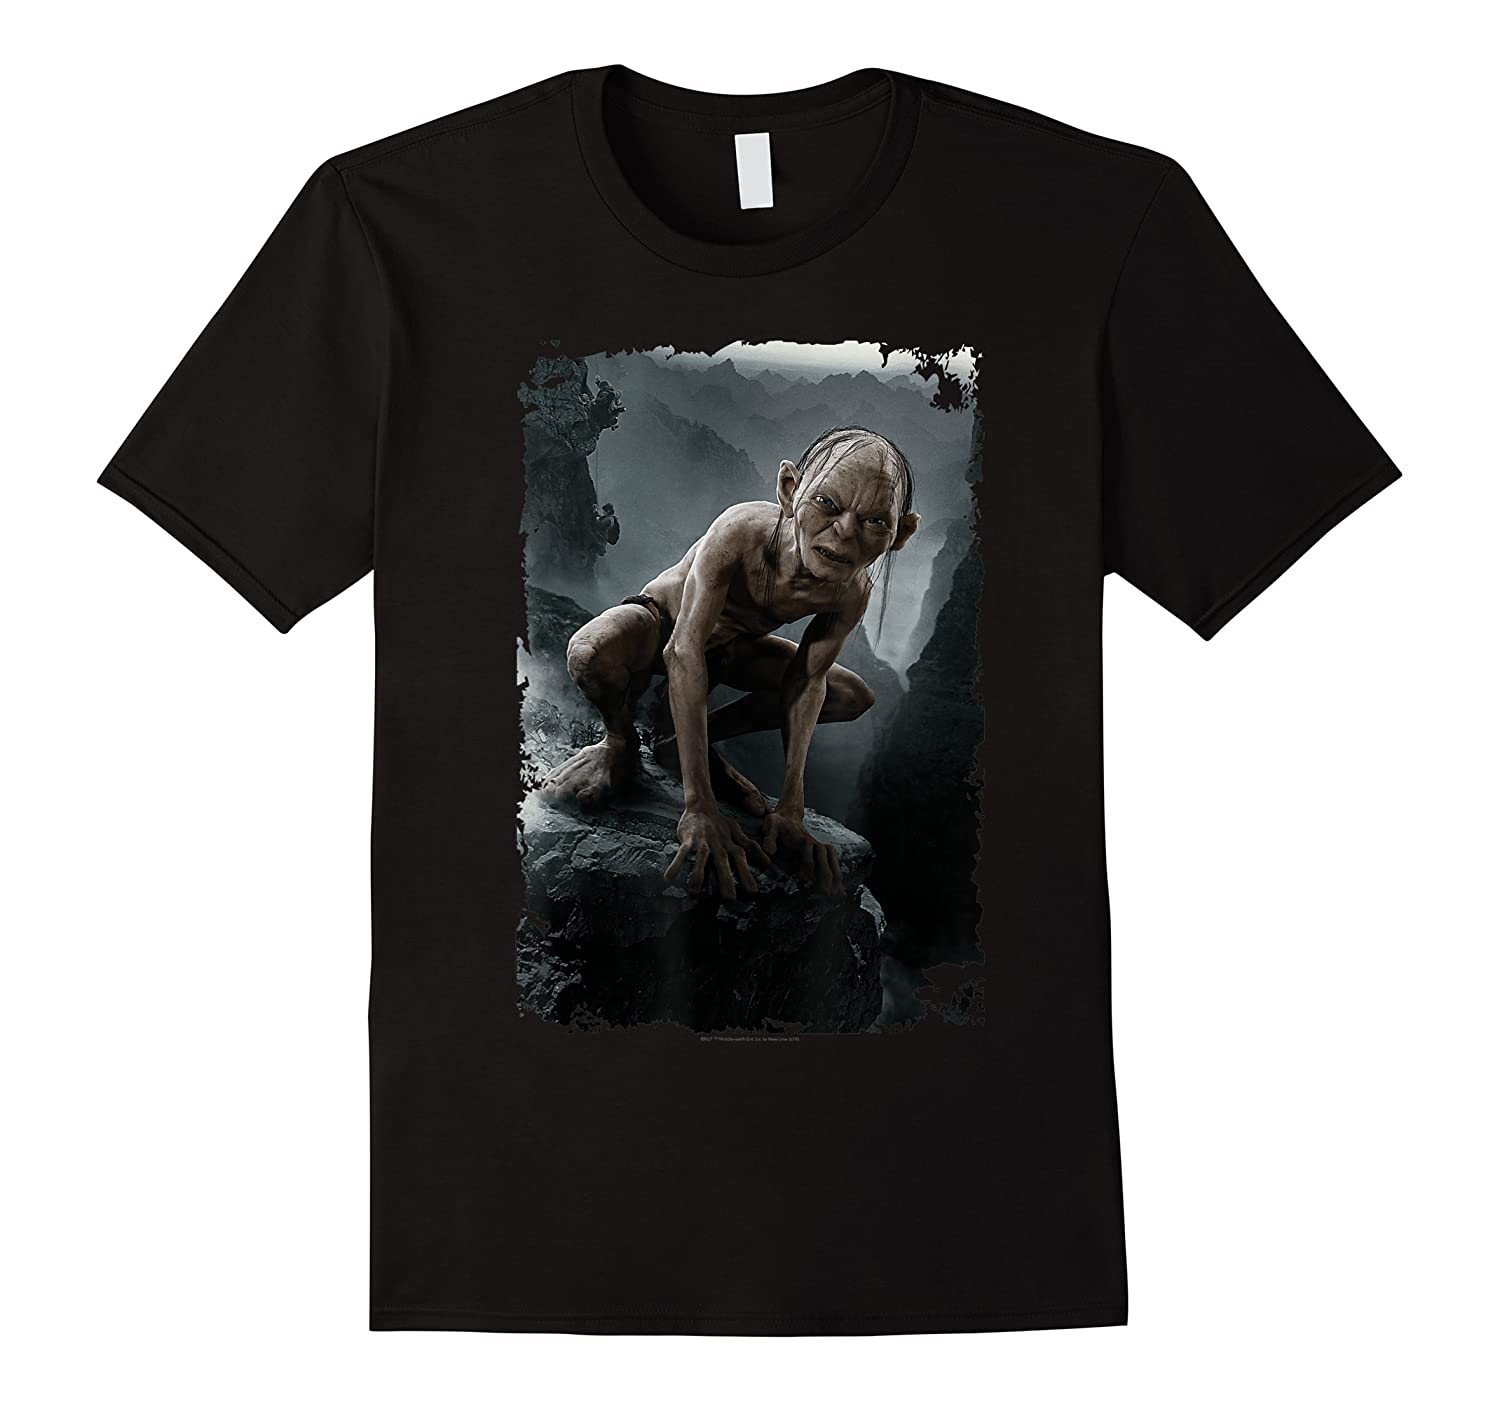 The Lord Of The Rings Gollum T-shirt